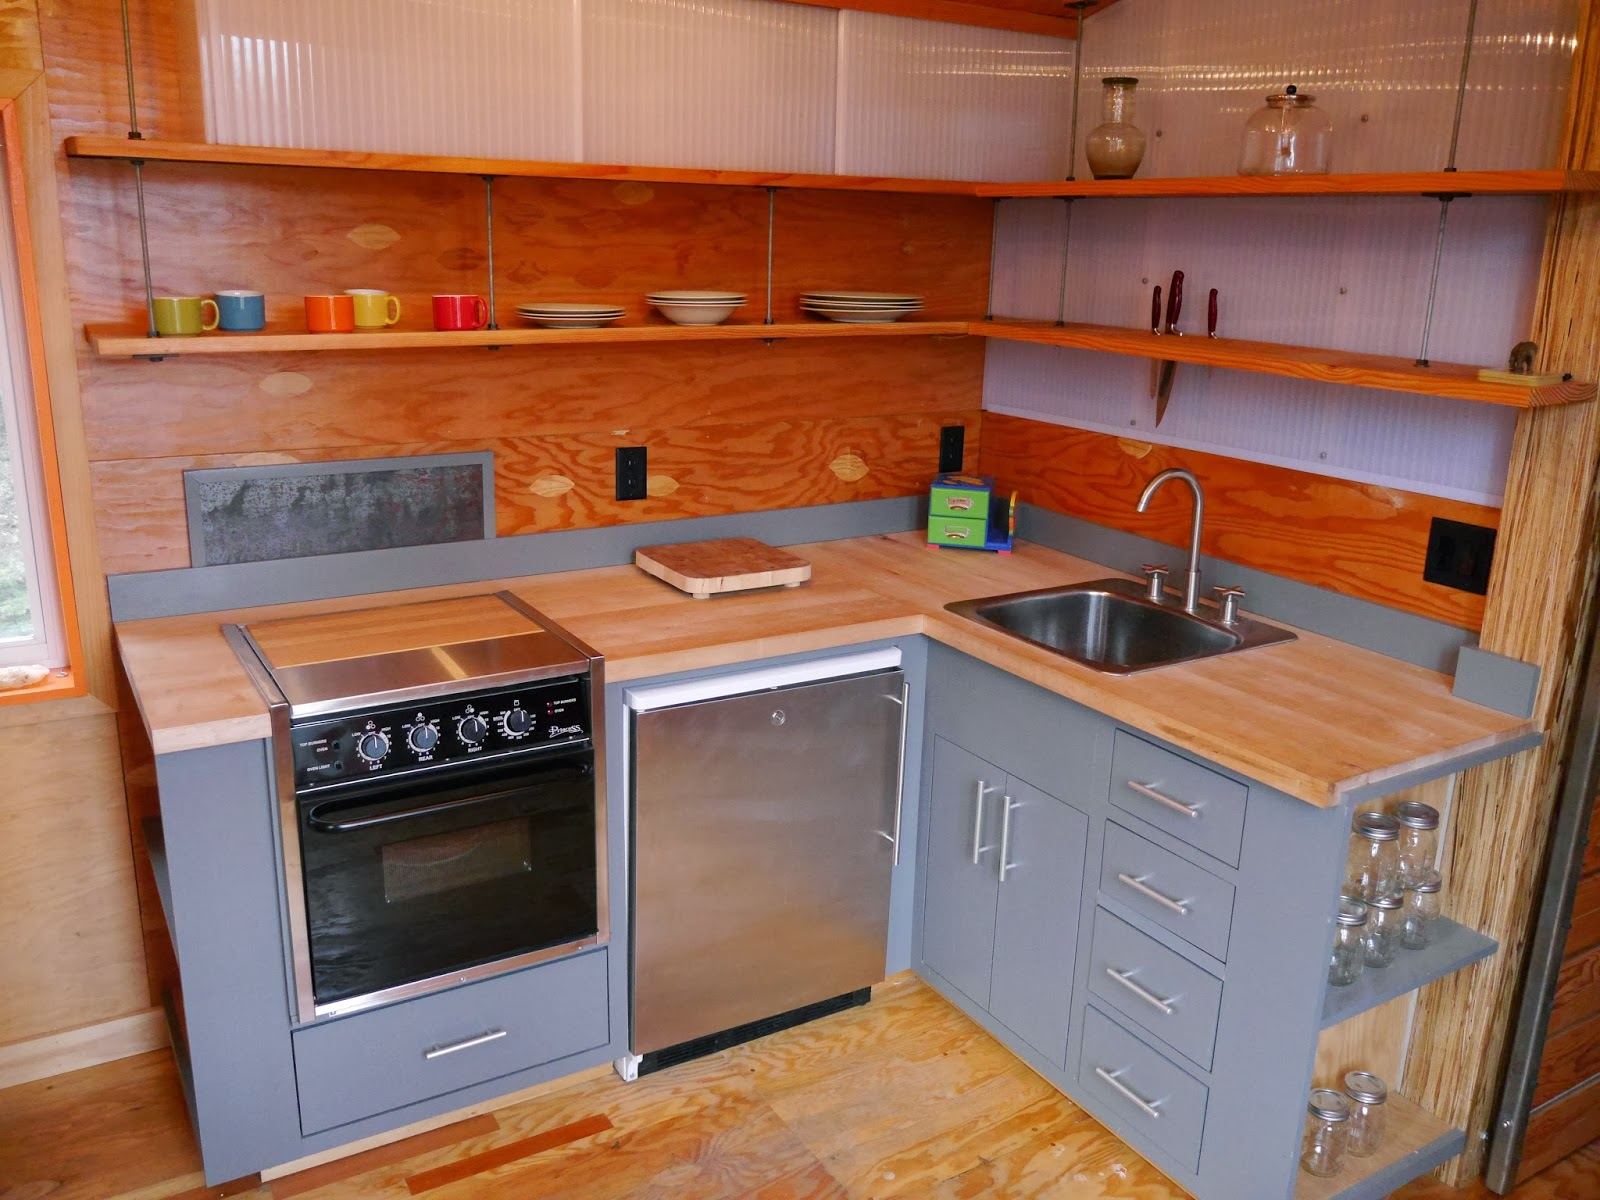 Relaxshacks A Great Tiny House Modern Kitchen In The